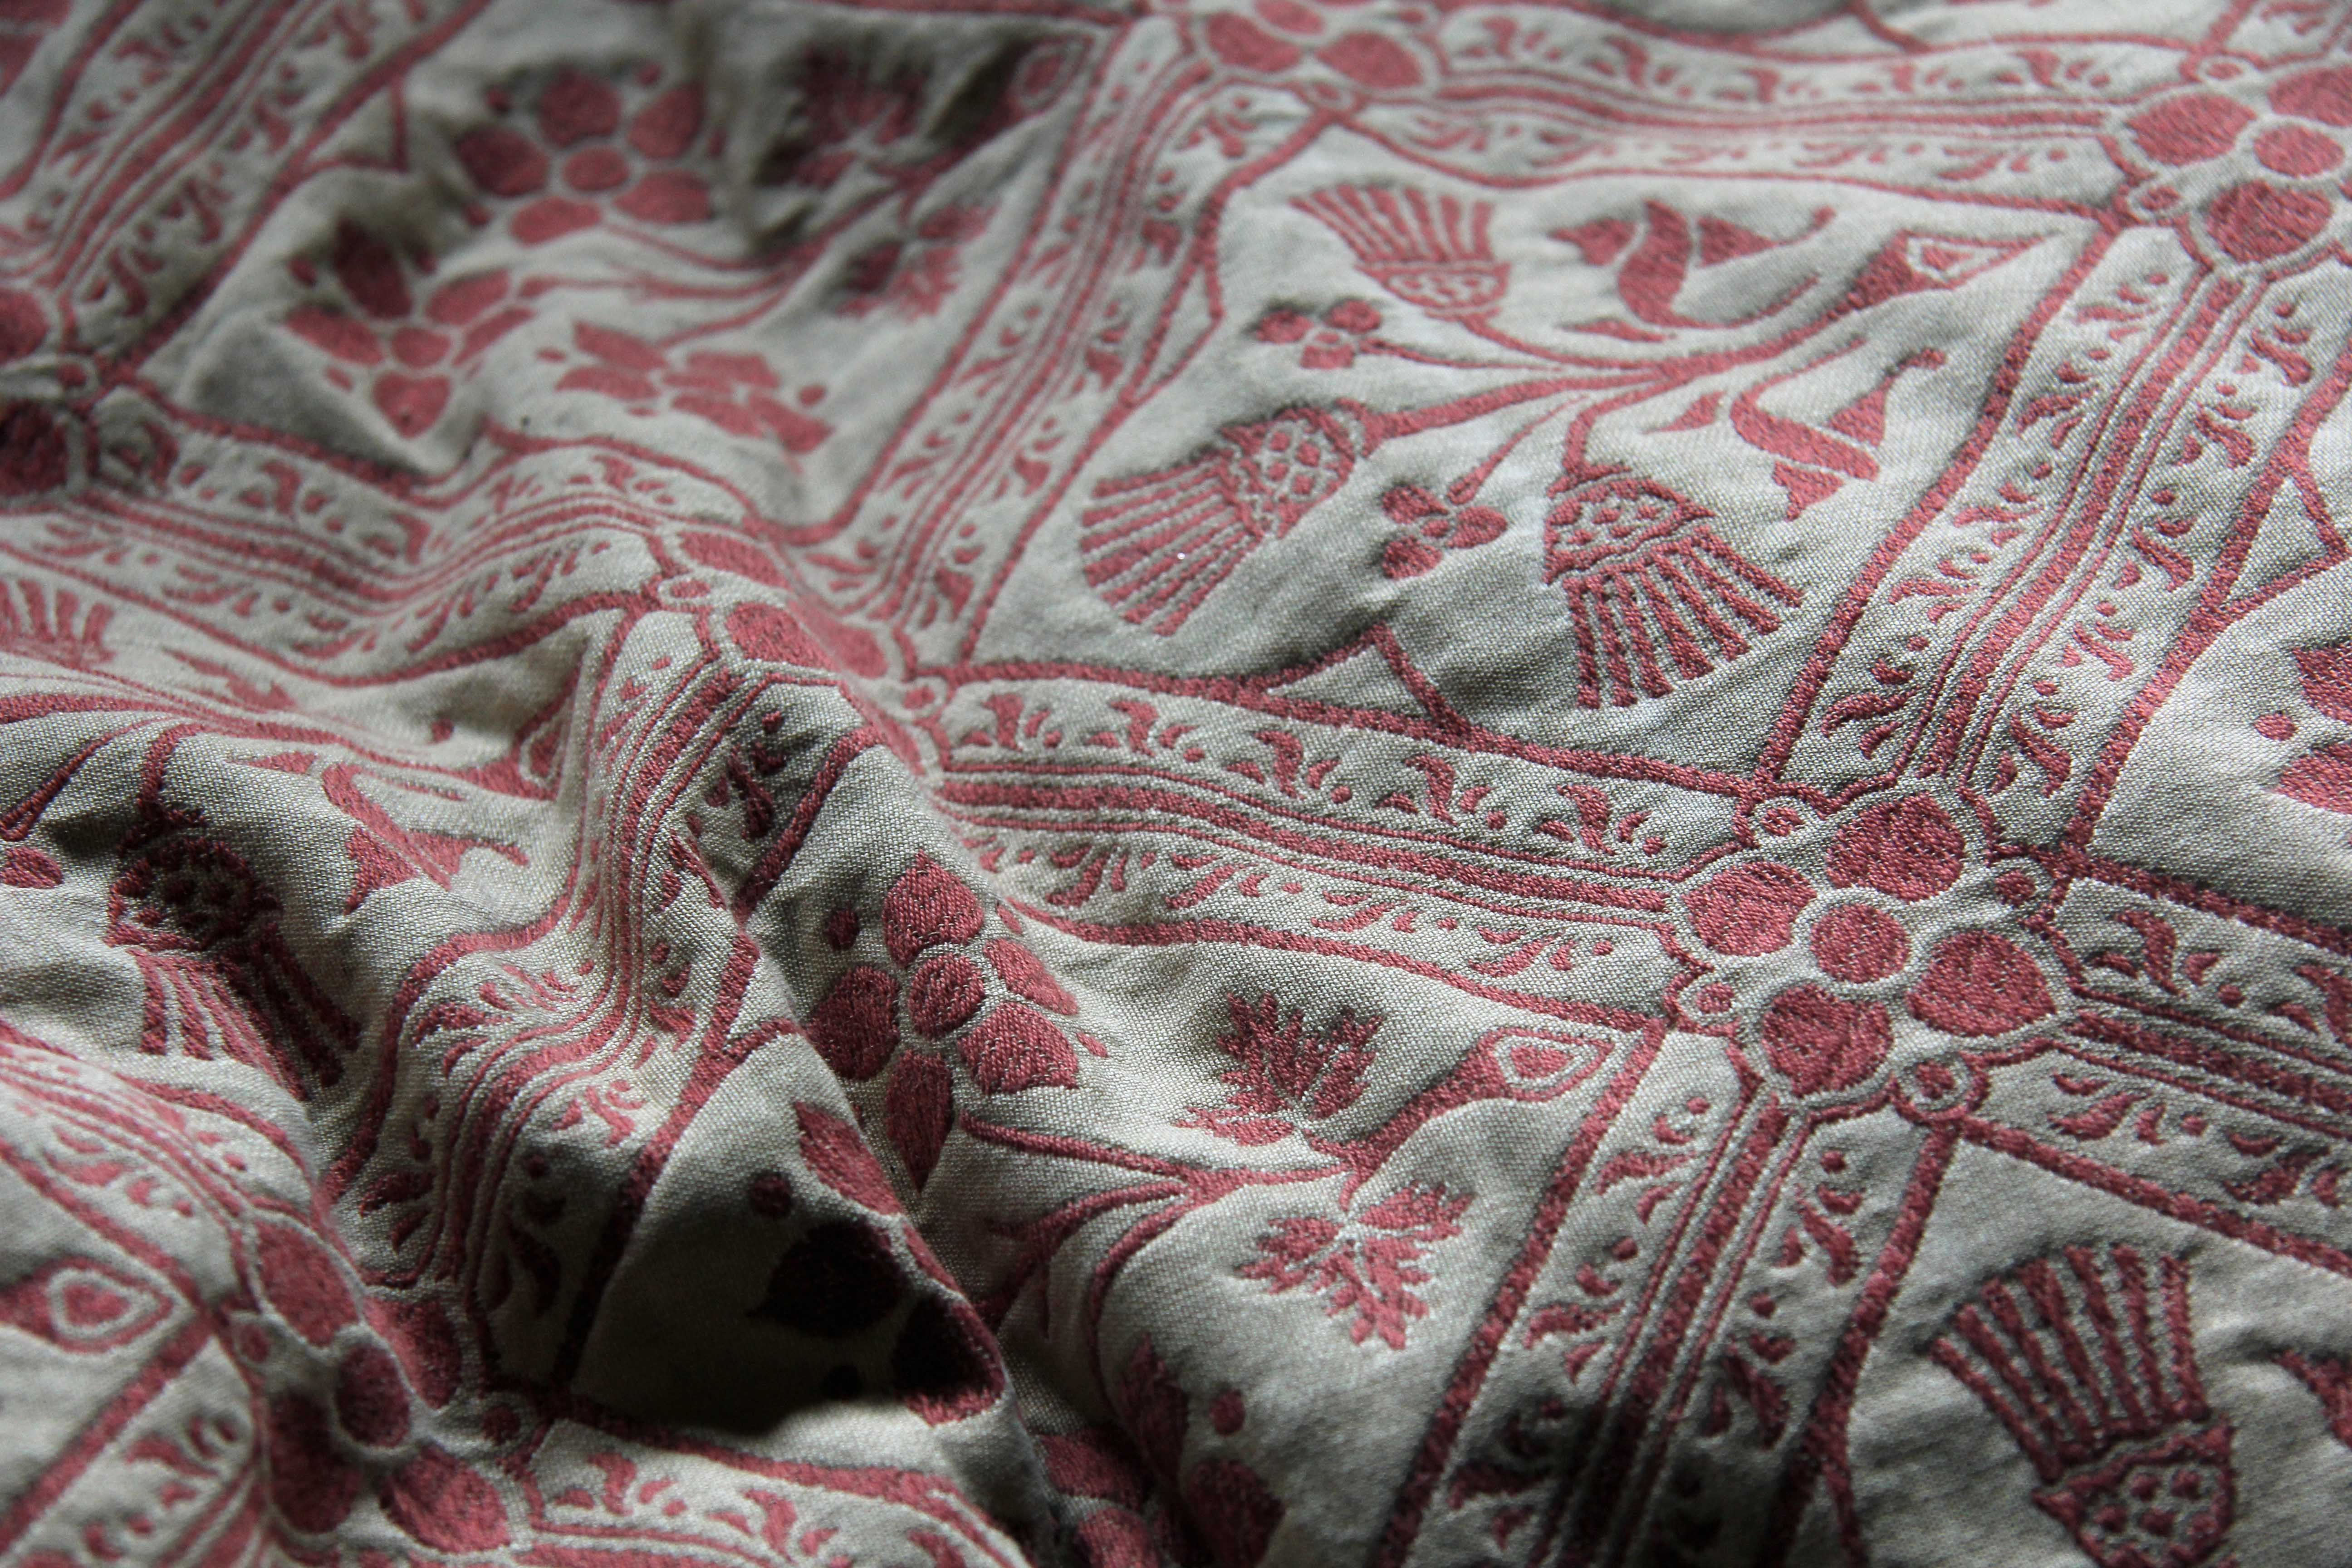 The bedspread in the Marquess of Bute's bedroom at Castell Coch (Red Castle) near Cardiff